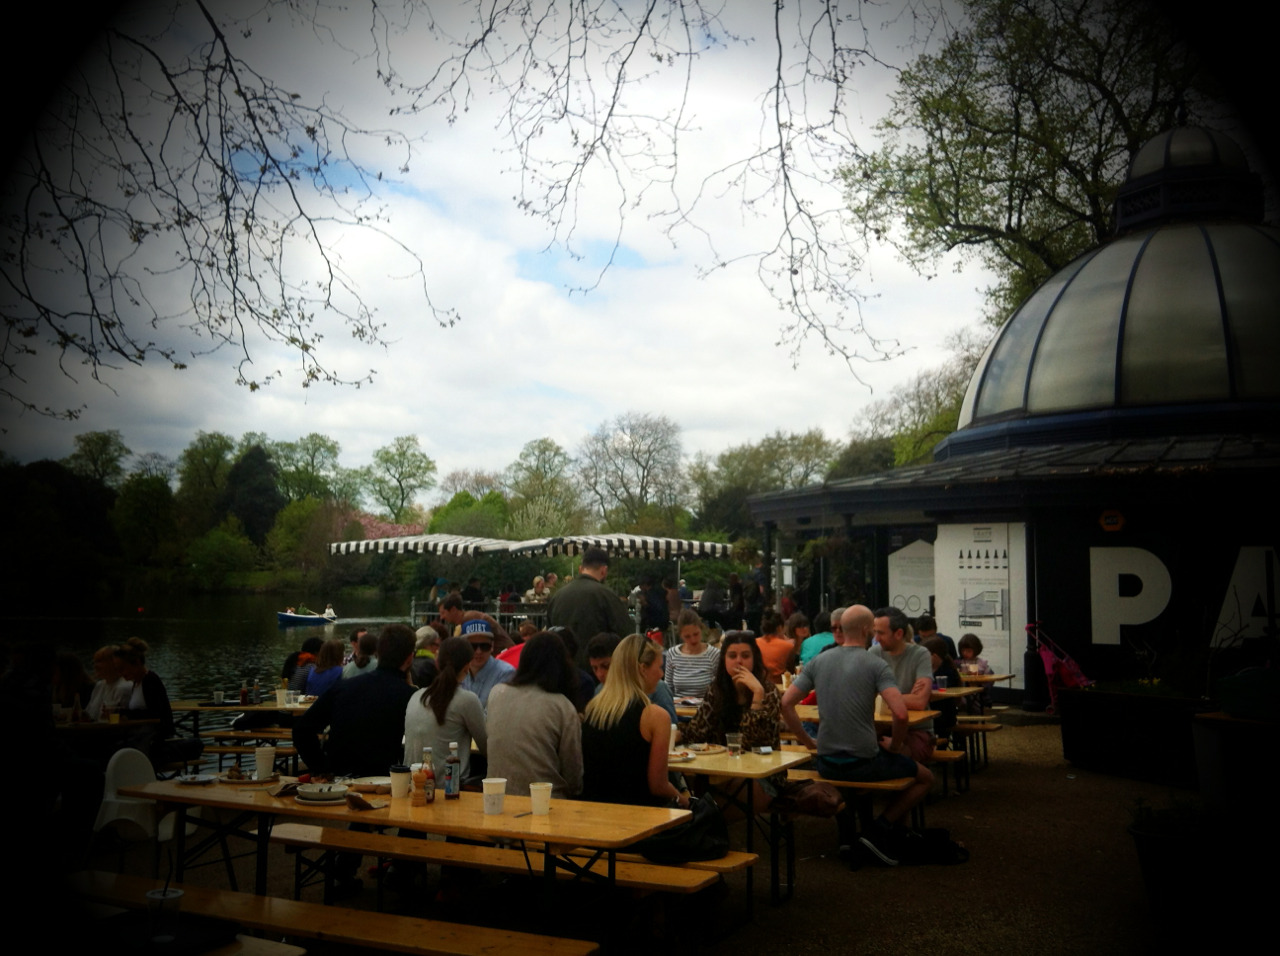 Hipsters & Babies in equal measure at the Pavilion in Vicky Park